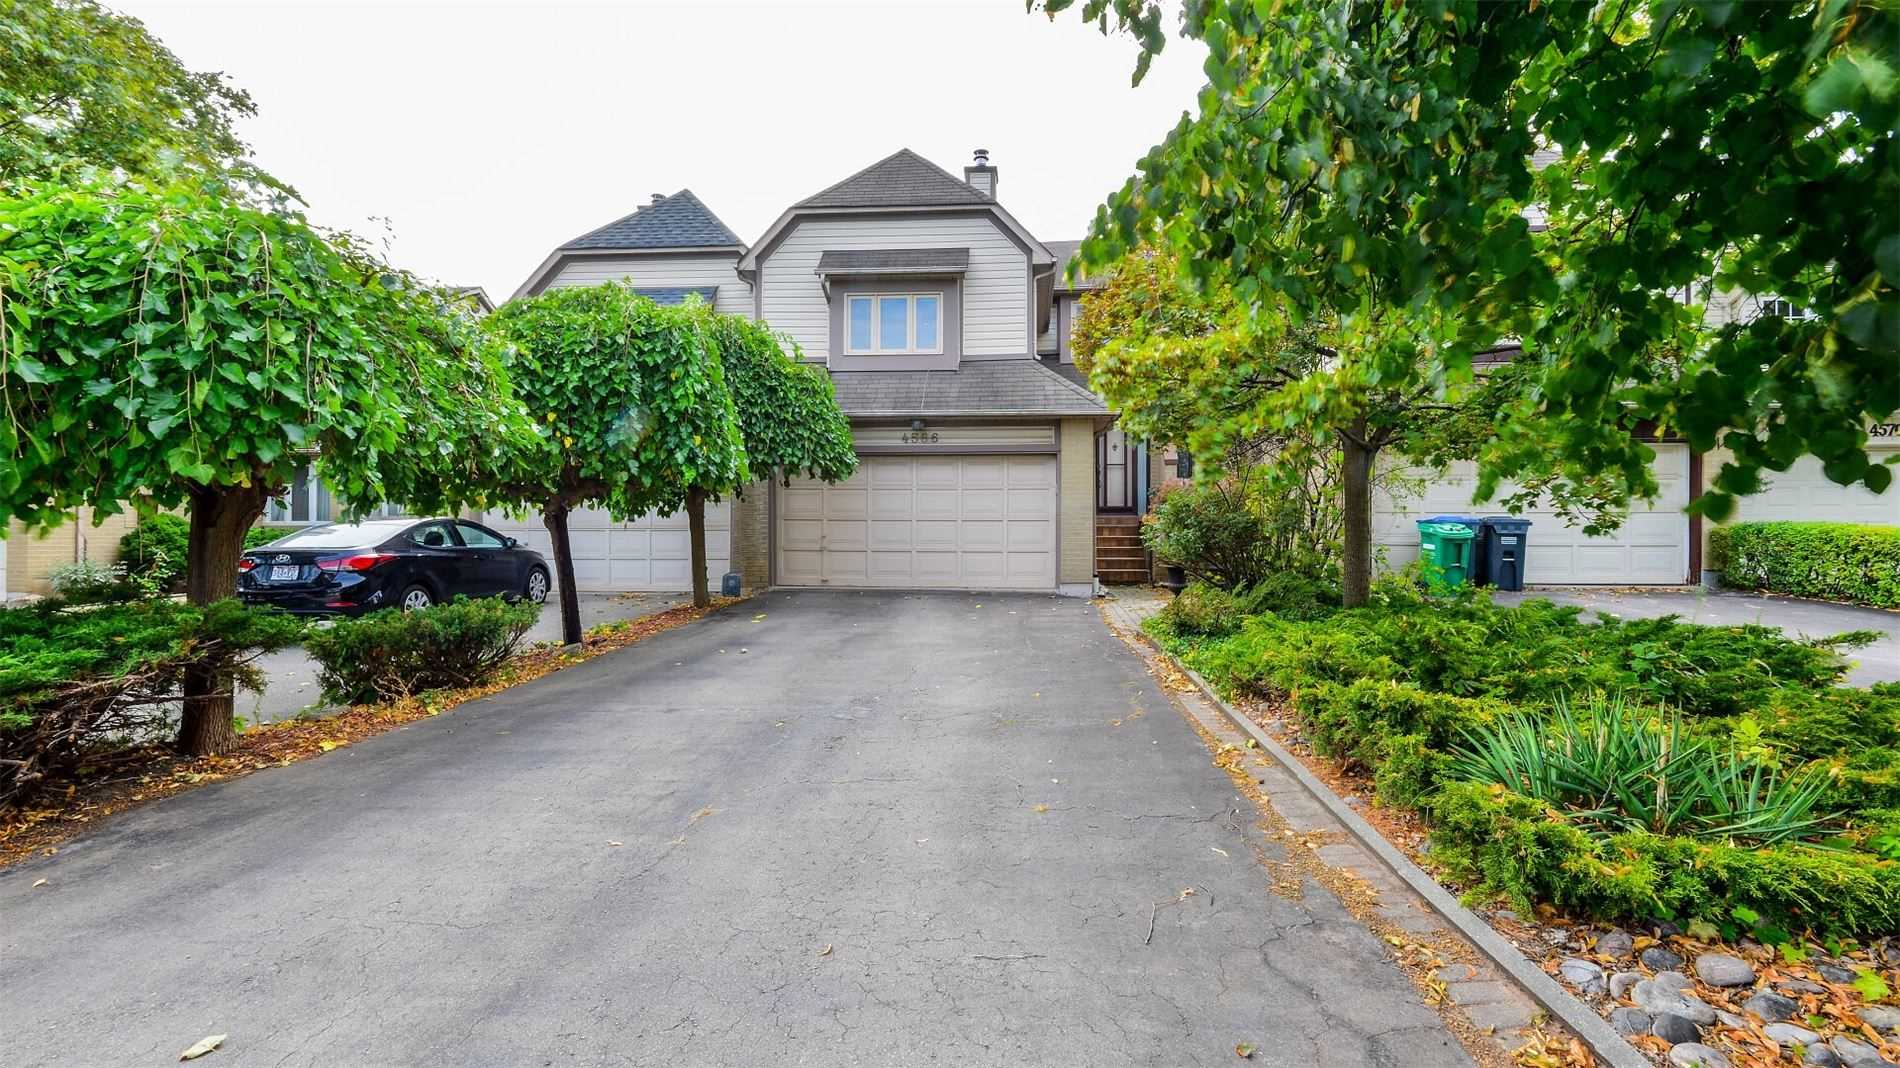 FEATURED LISTING: 4566 Bay Villa Avenue Mississauga